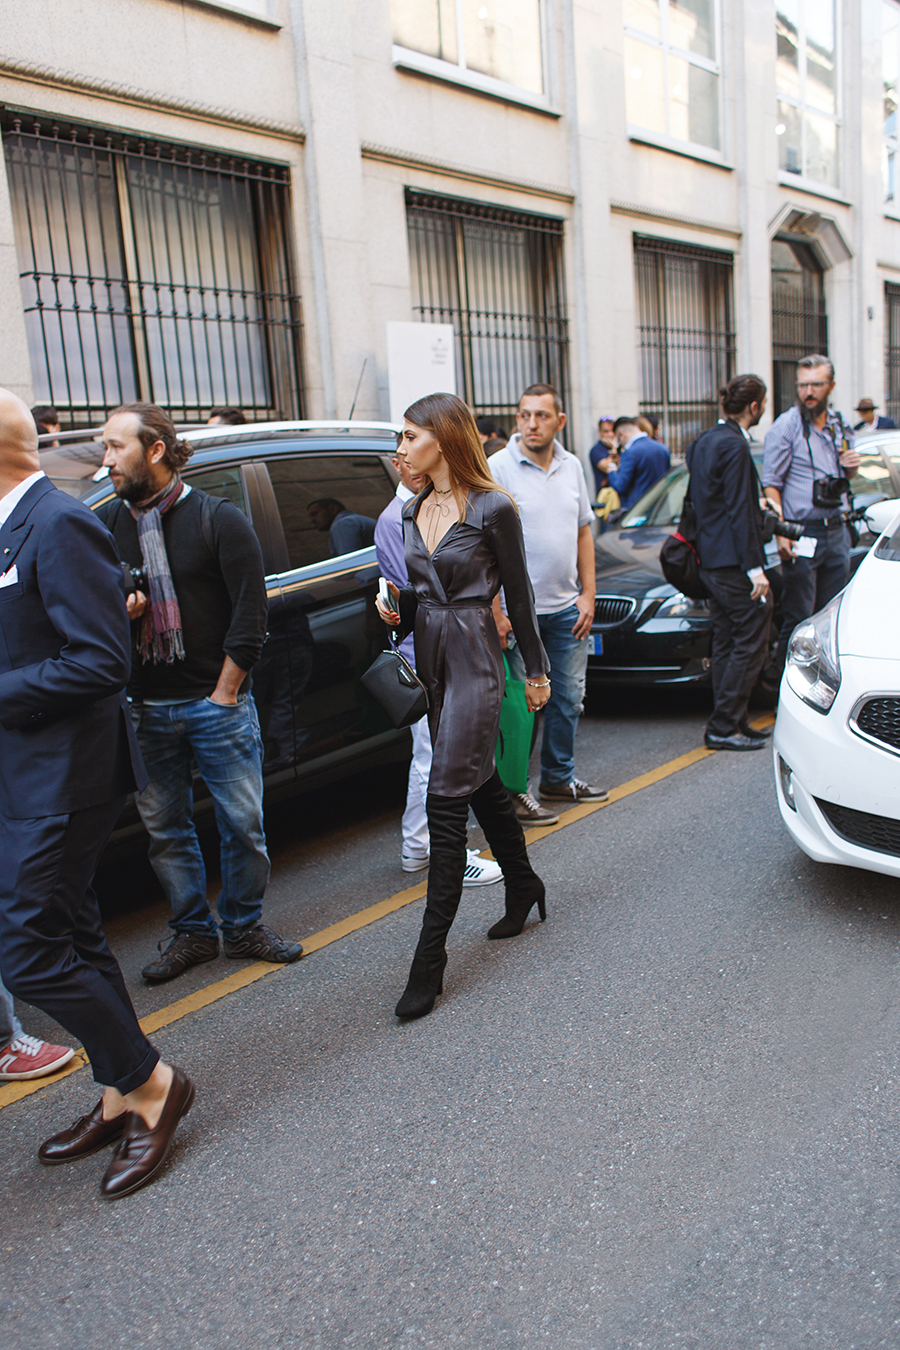 larisa costea, larisa costea blog, the mysterious girl, the mysterious girl blog, fashion blog, blogger, fashion, fashionista, it girl, travel blog, travel, traveler, ootd, lotd, outfit inspiration,look of the day,outfit of the day,what to wear,duomo, duomo di milano, milano,milan,milan fashion week,mfw,mfw ss 17,spring summer, pandora,pandora jewelry, fall collection,unique as we are, pandora romania, the look of you, rochie laura hincu,laura hincu, silk essentials, silk dress,grey dress,robe dress, kimono dress,richmond fashion show,milan fashion week,street style, fall outfit, chokers,miss mary a little,kurt geiger,over the knee boots,givenchy,givenchy bag,antigona, luisa via roma,online shop, shopping